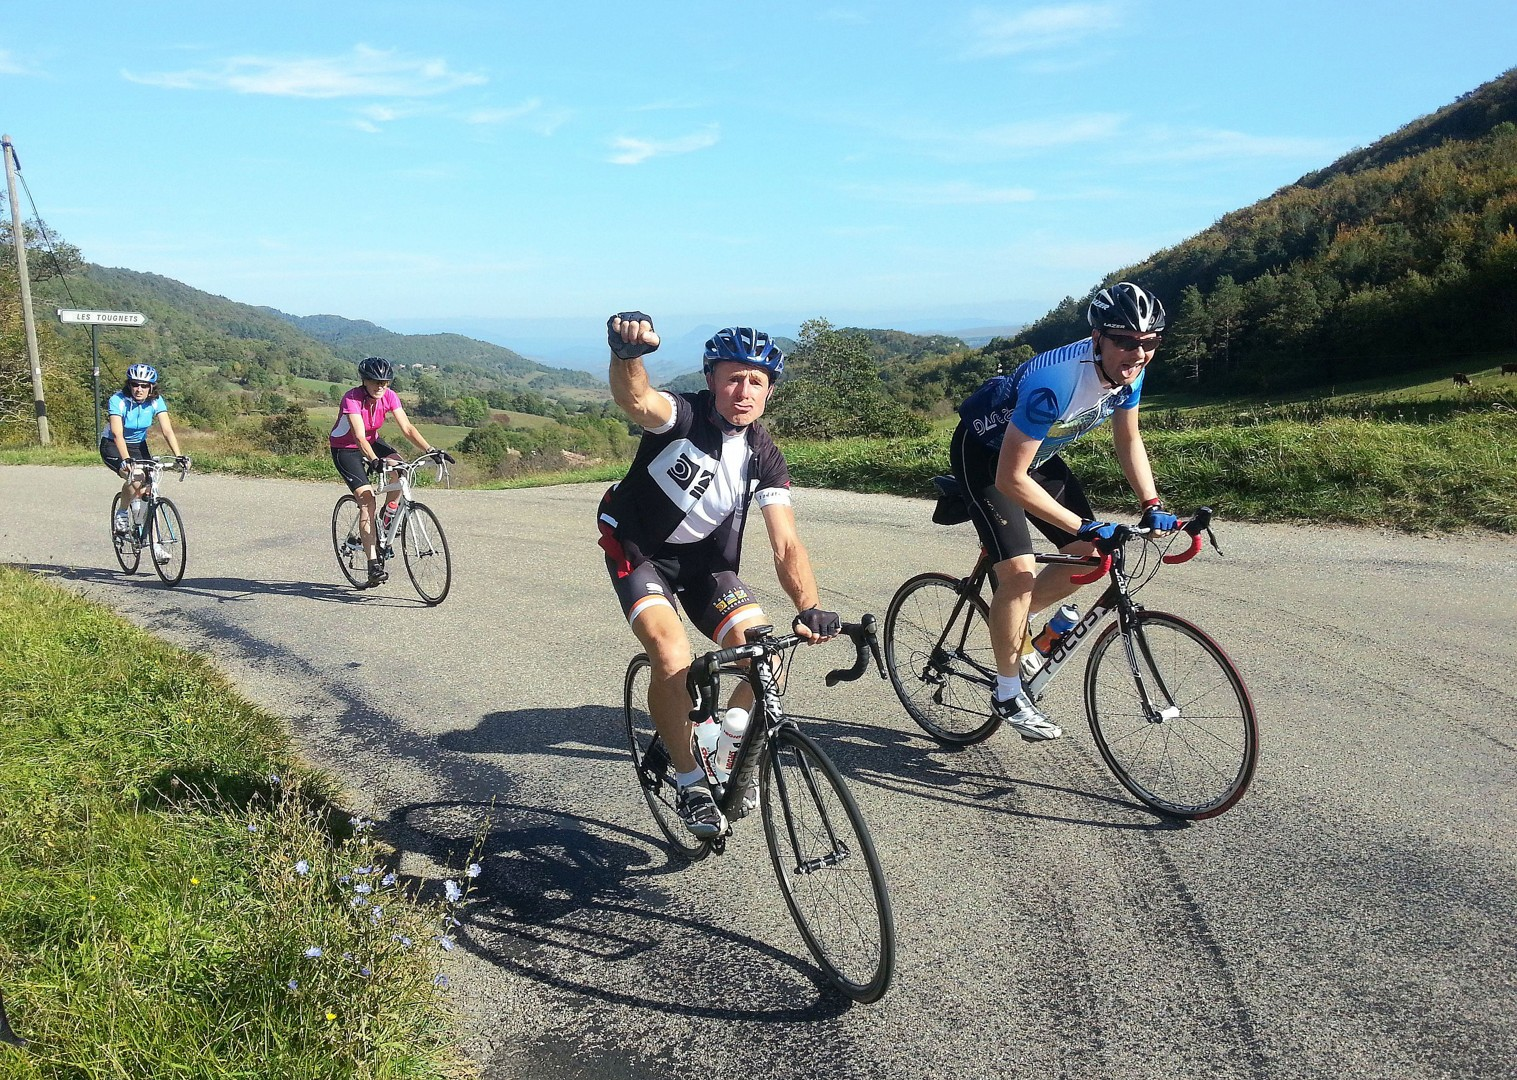 group-guided-holiday-pyrenees-fitness-week.jpg - France - Pyrenees Fitness Week (Grade 2-3) - Guided Road Cycling Holiday - Road Cycling